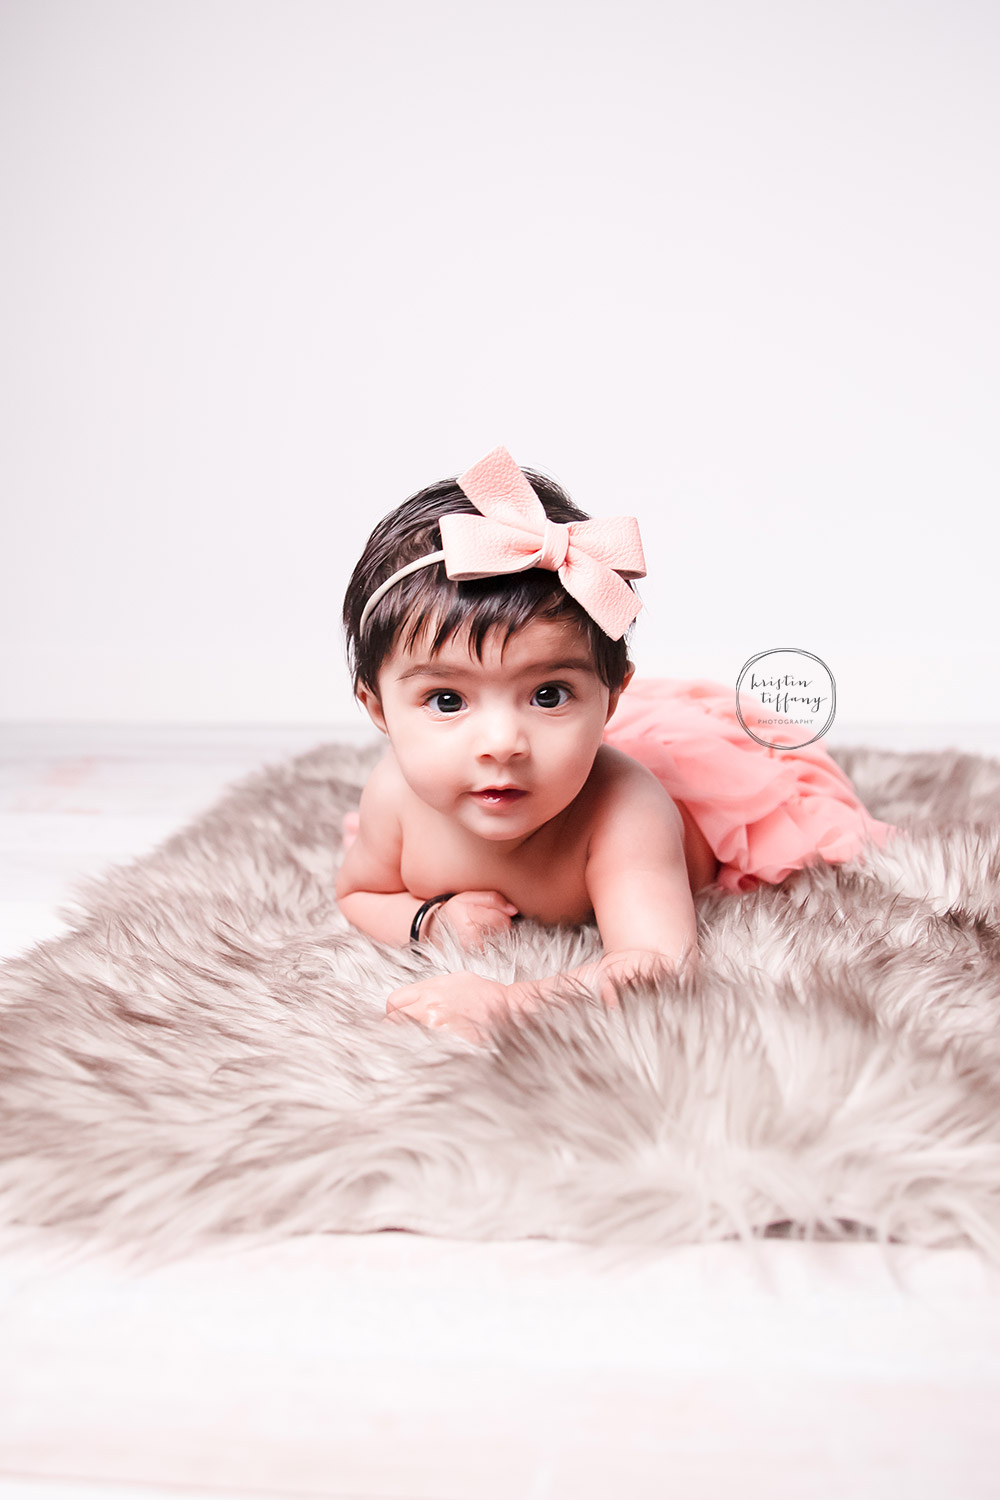 a photo of a baby girl at her photoshoot